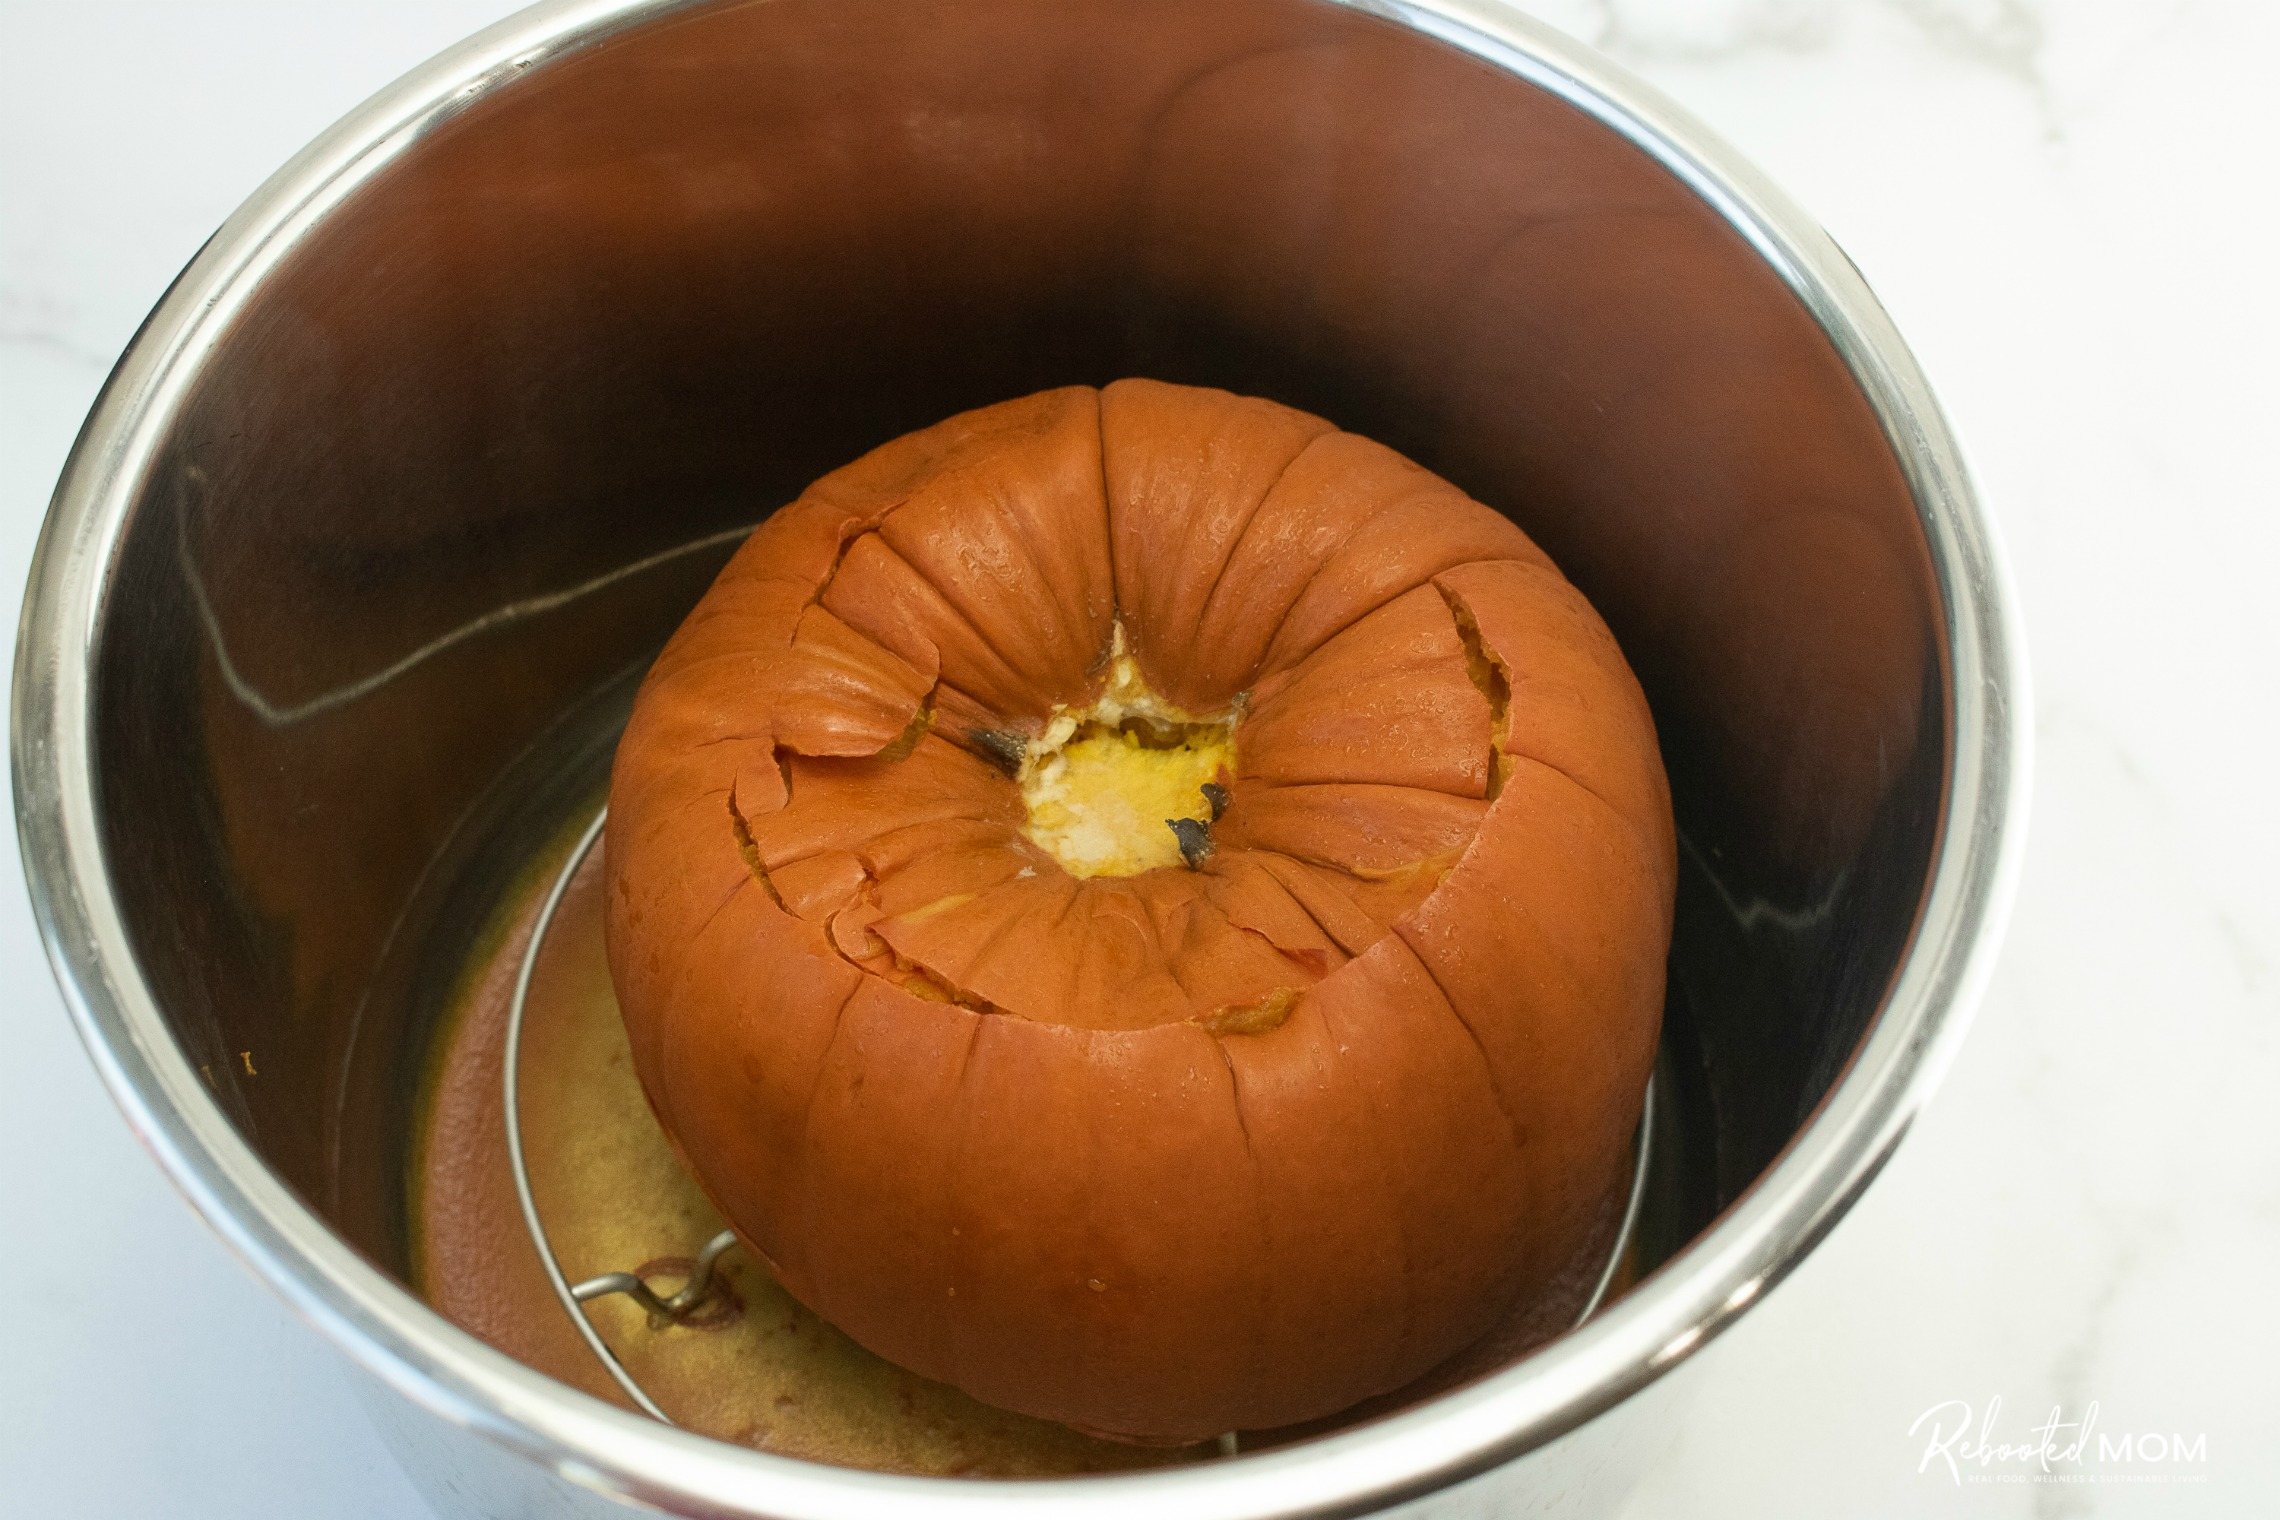 Whole pumpkin in the Instant Pot